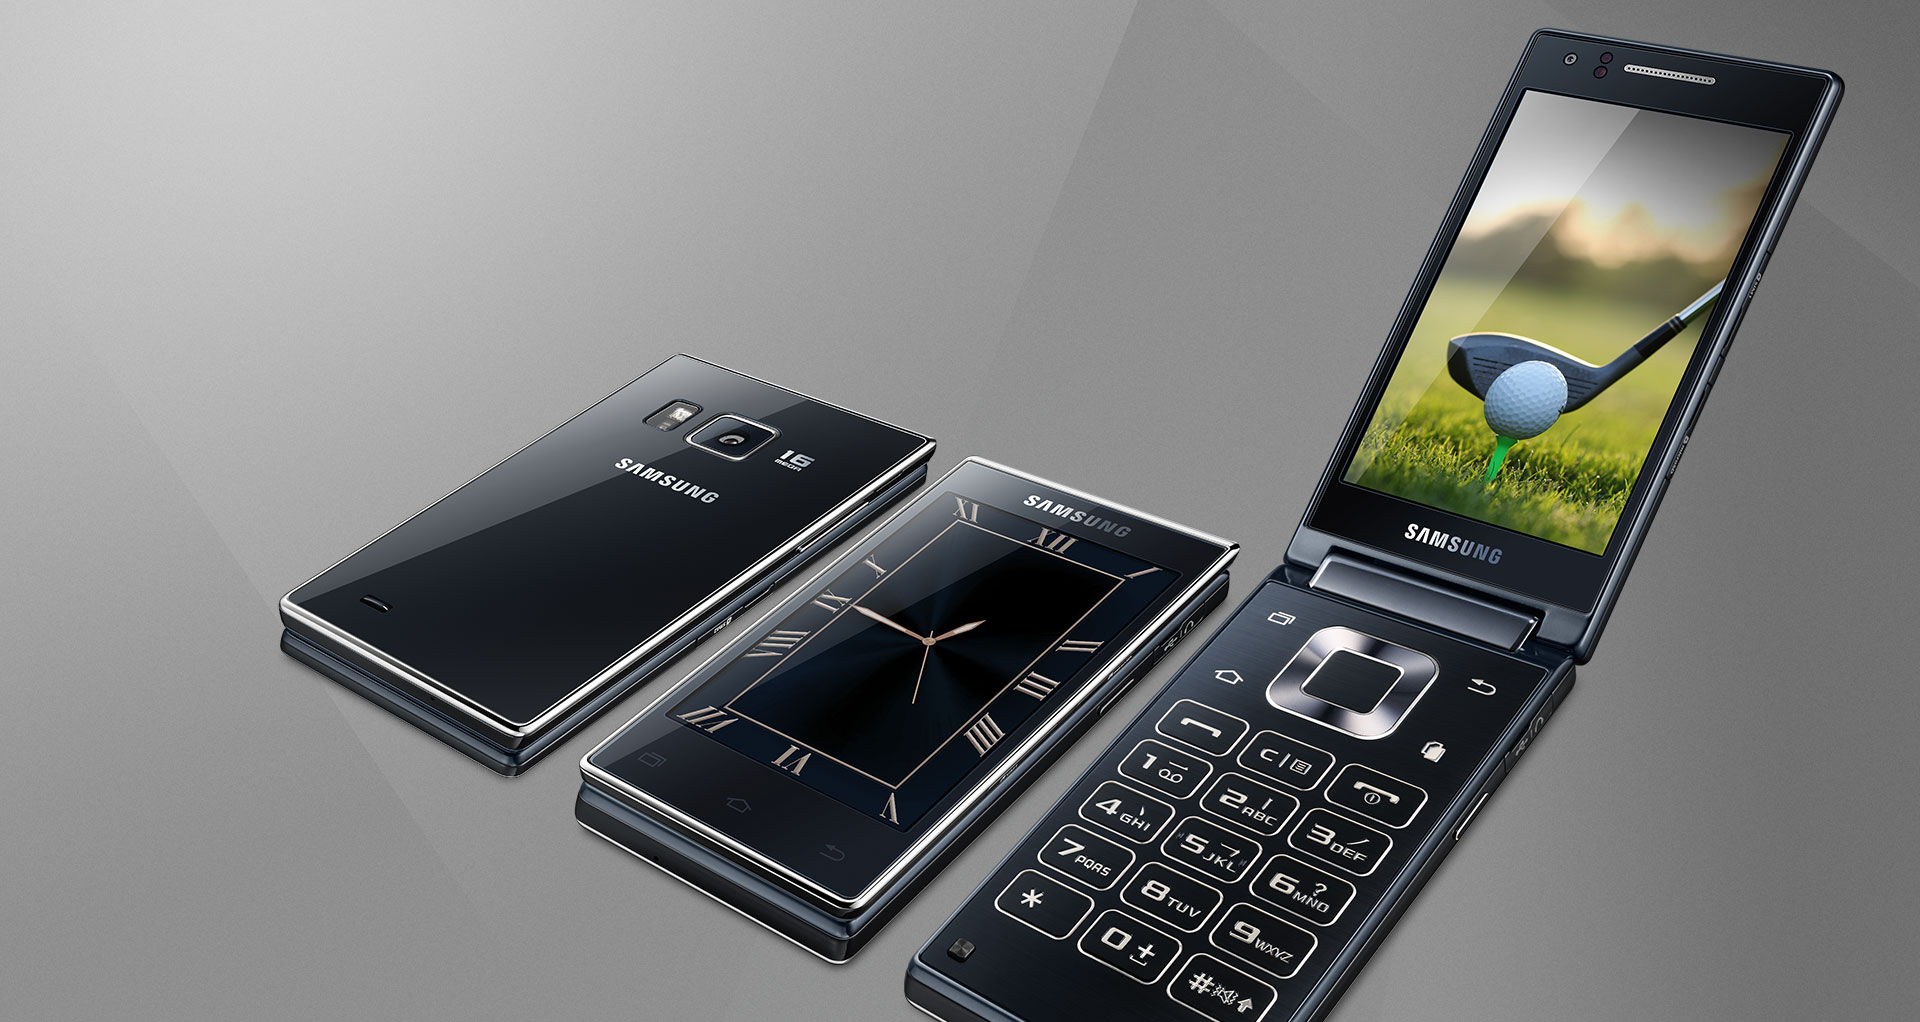 Samsung launches the SM-G9198 clamshell phone - NotebookCheck.net News